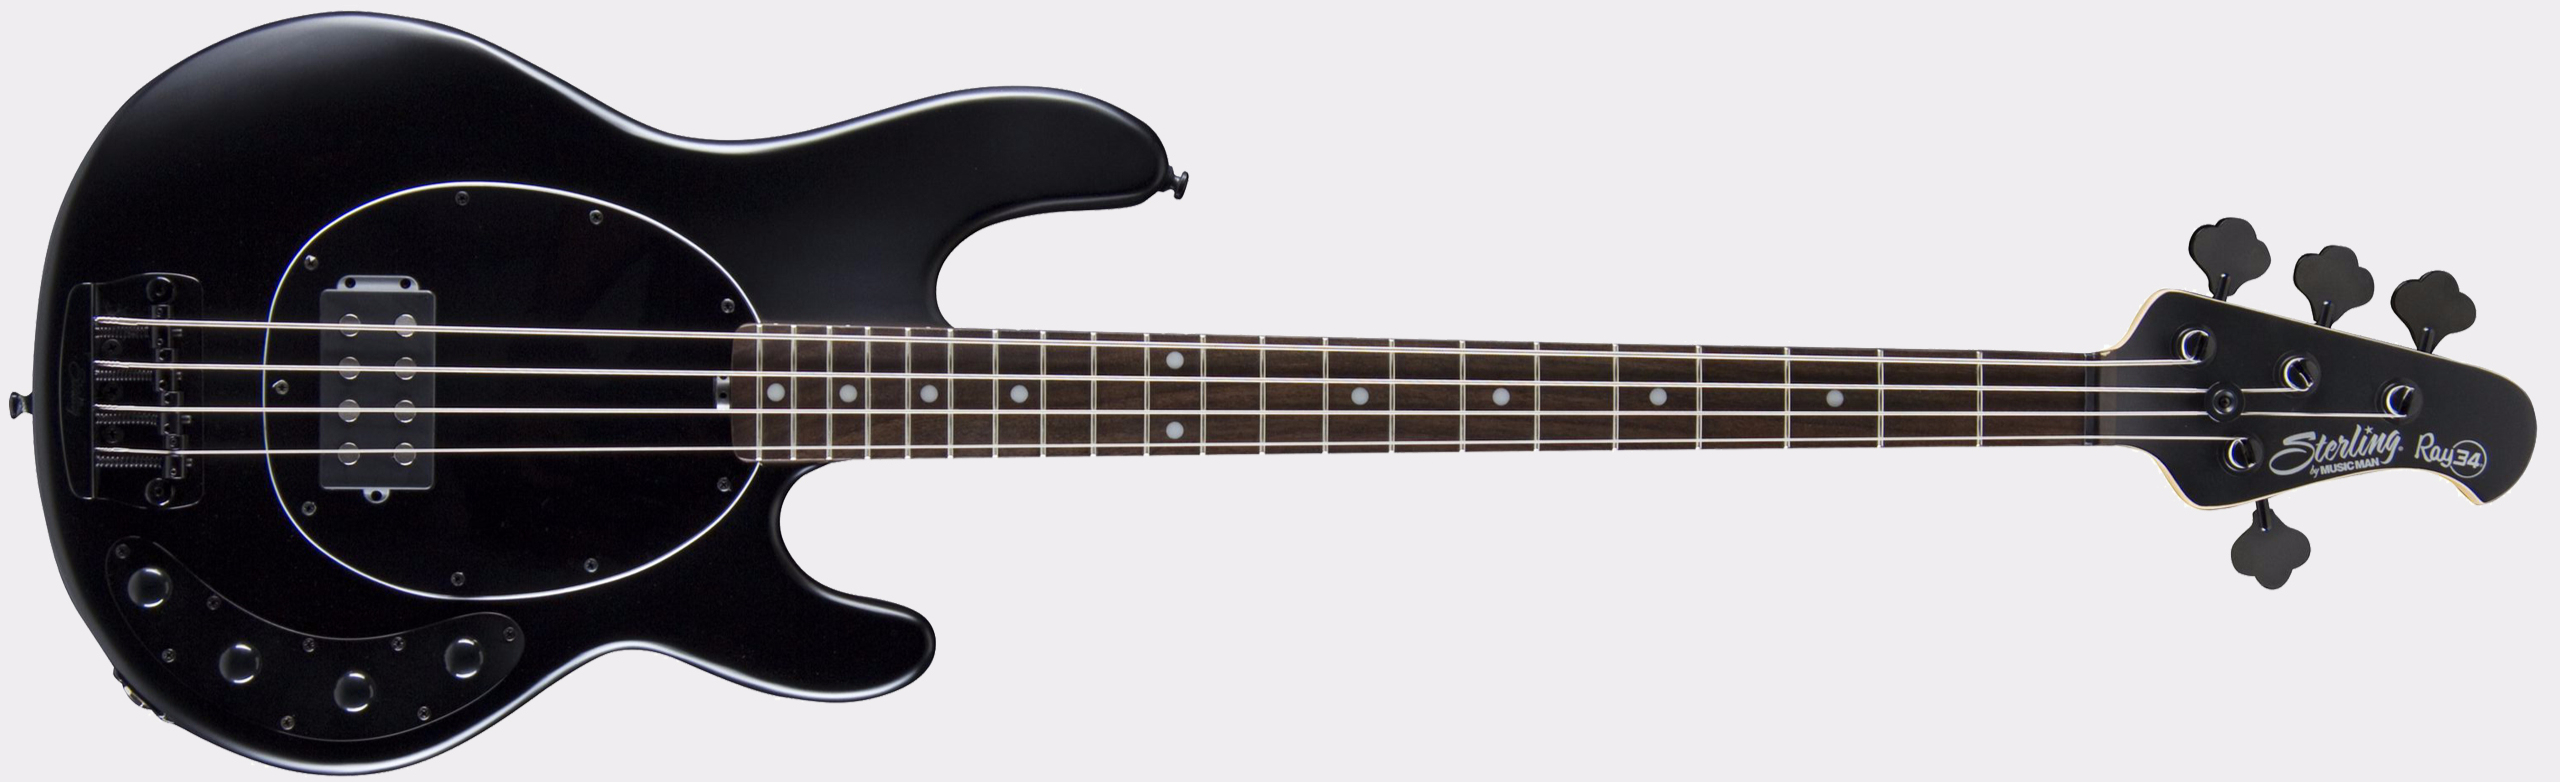 STERLING BY MUSIC MAN Ray34 RW Stealth Black